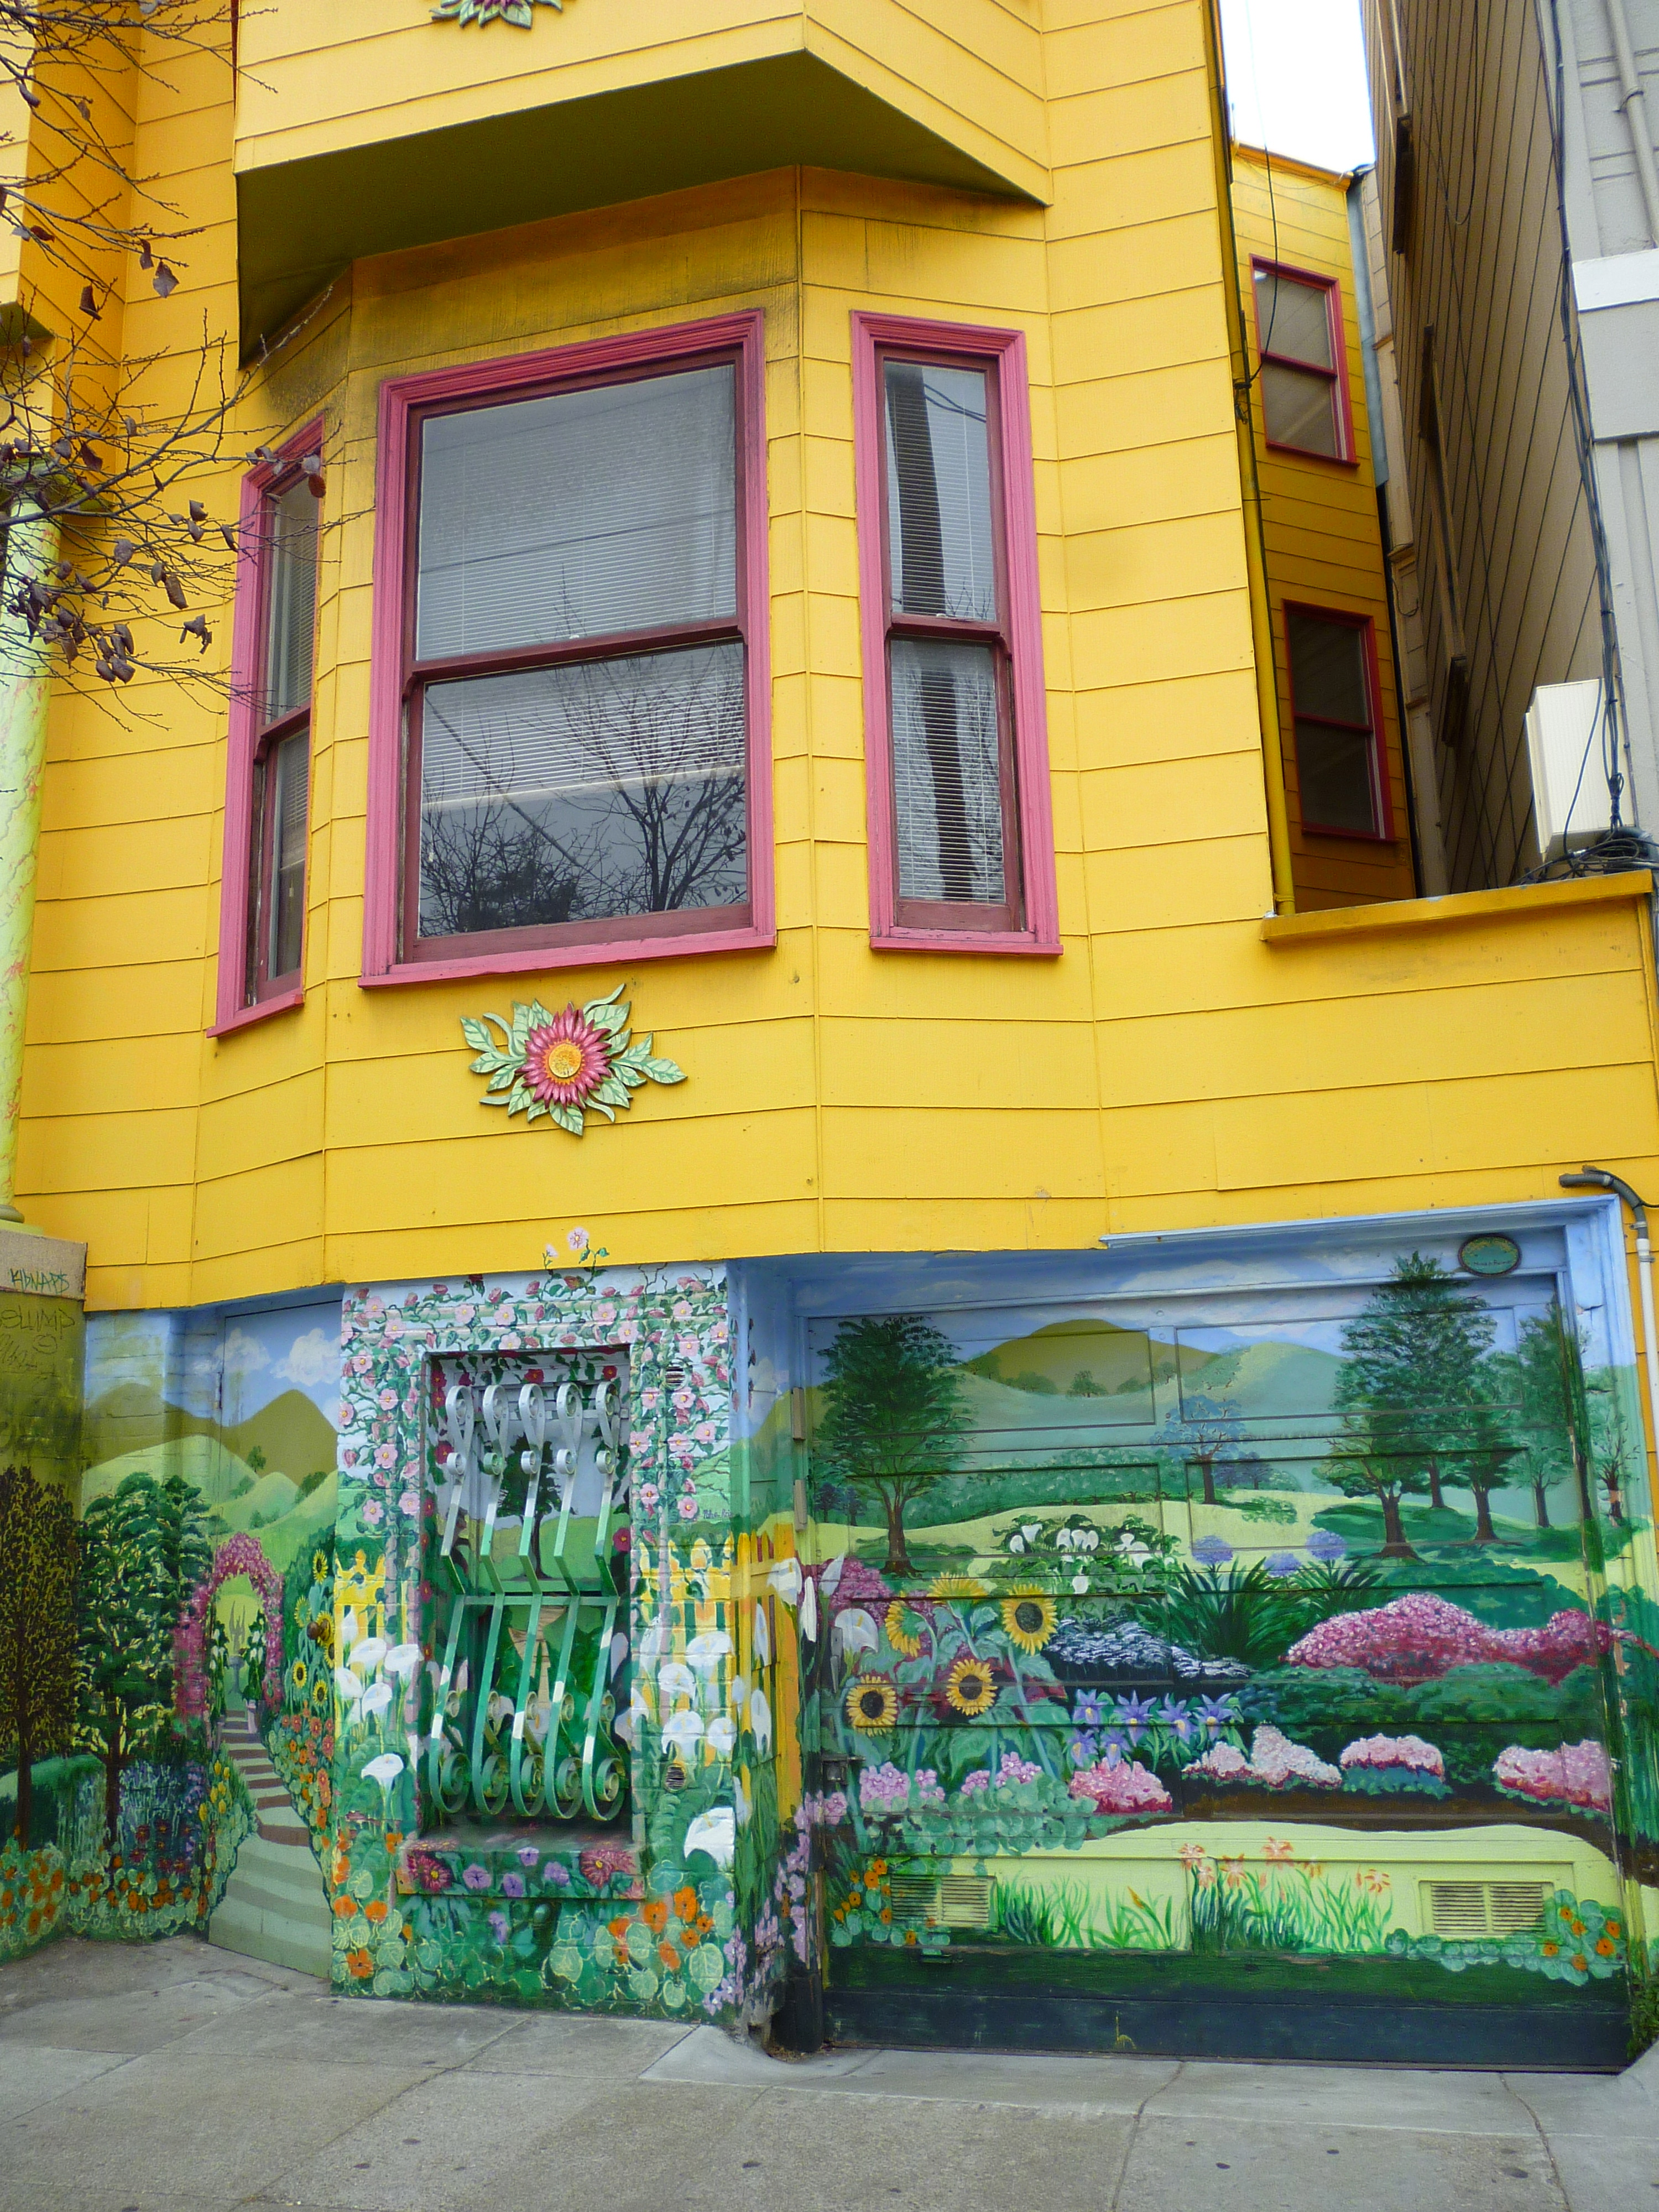 San Francisco: Color Bursts from the Walls - New York Cliché